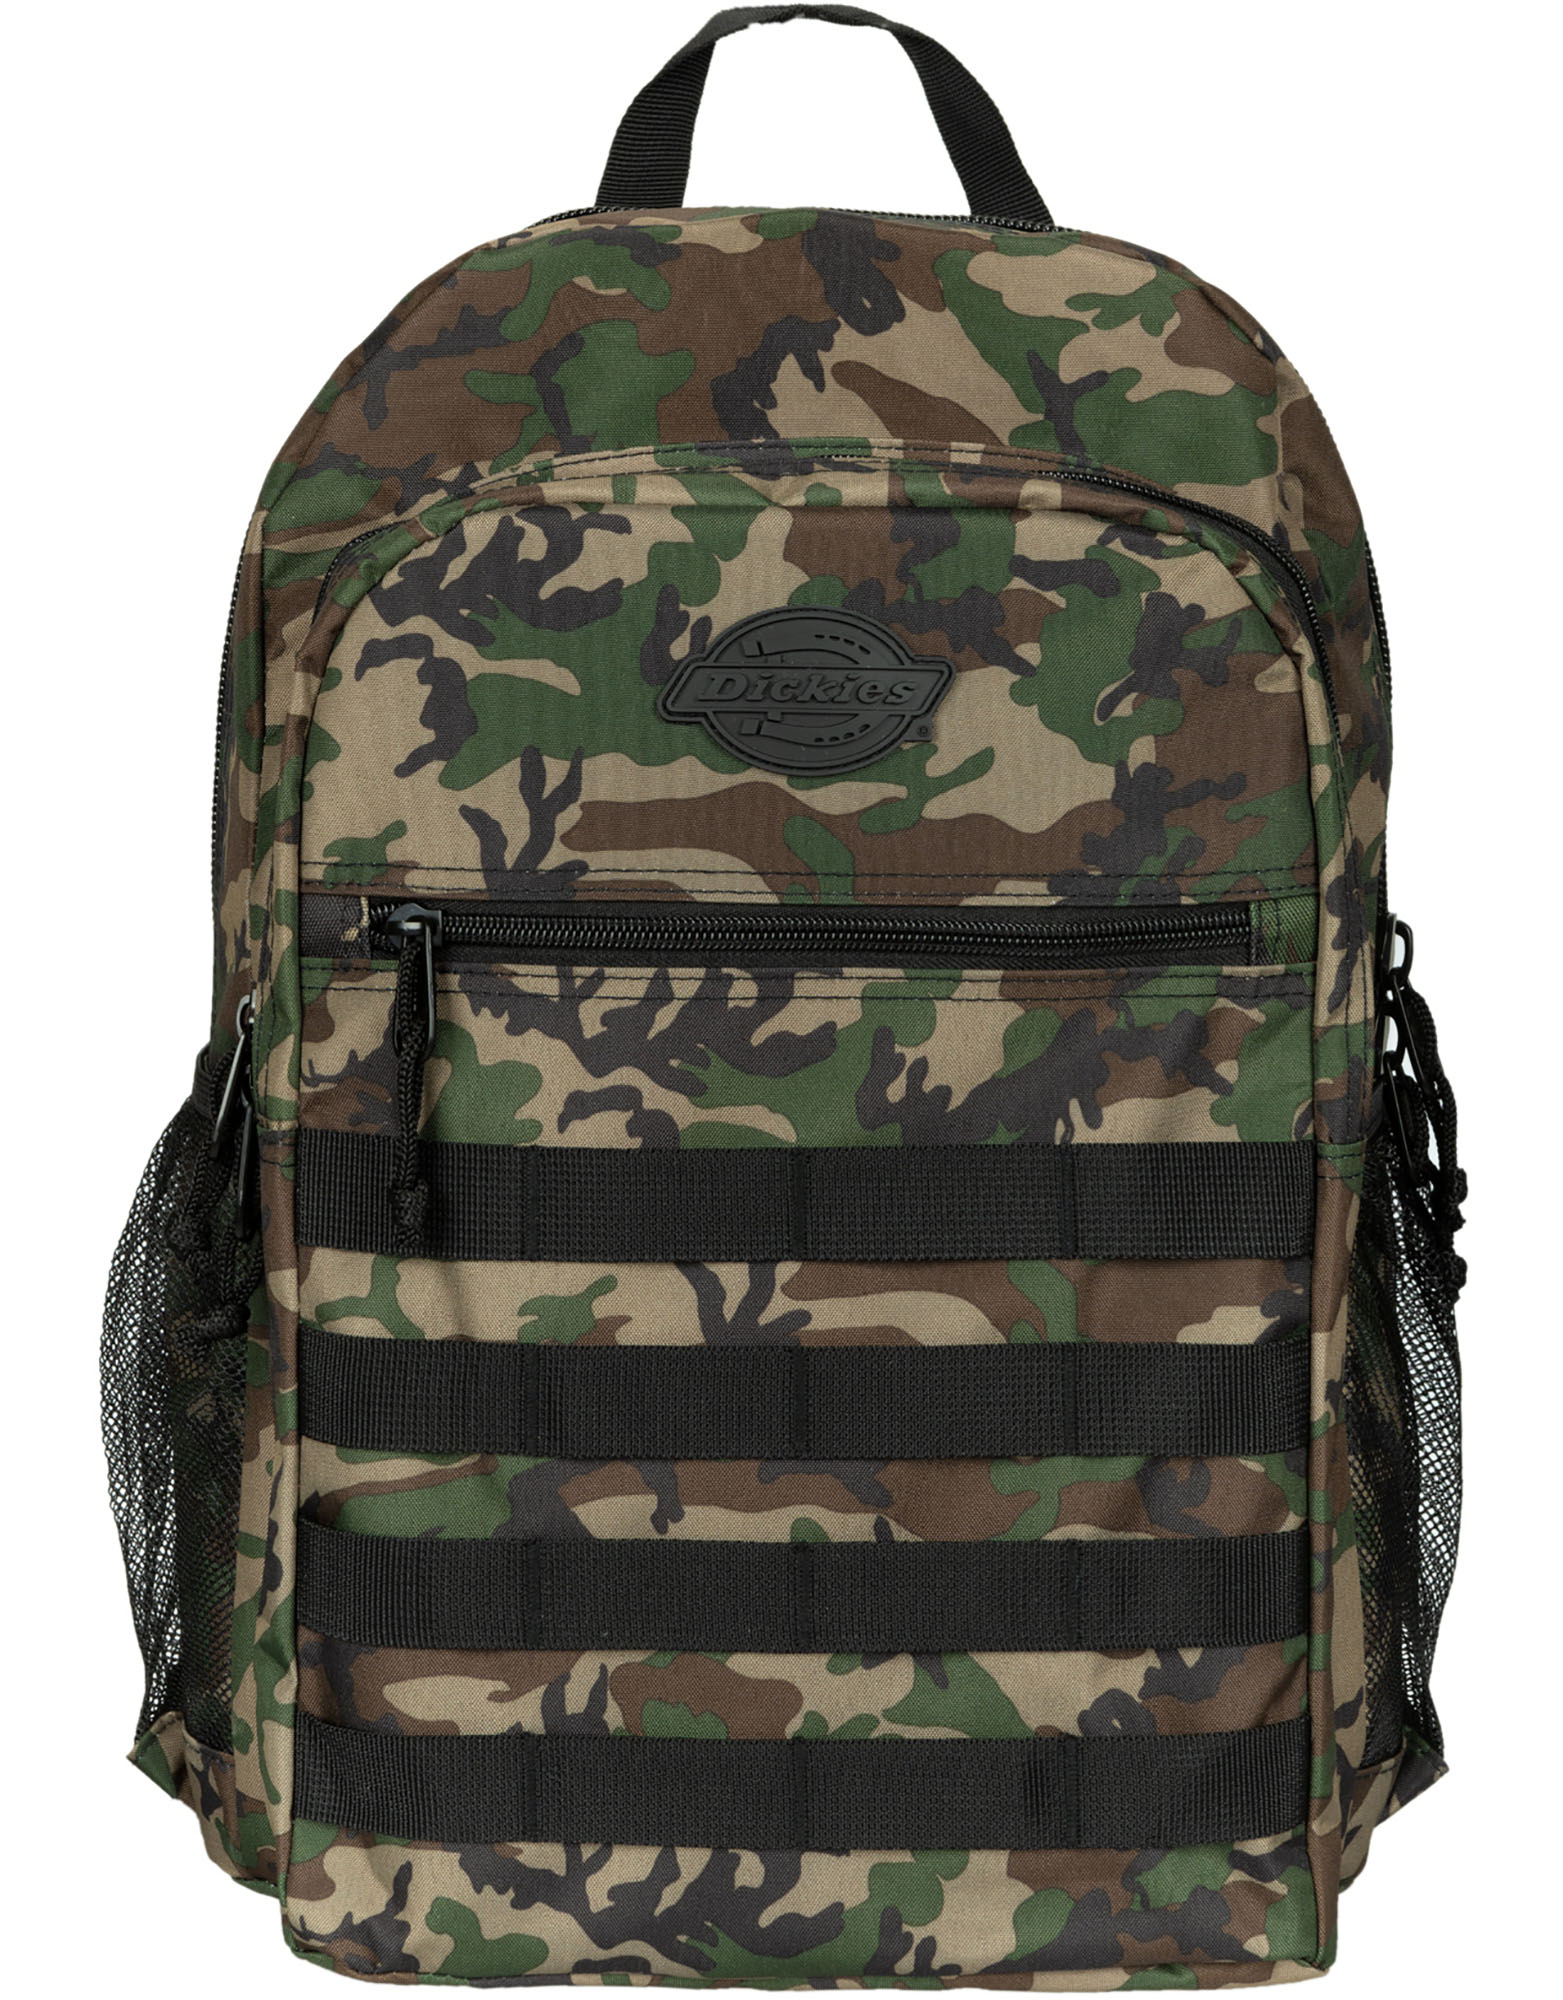 Campbell Camo Backpack - Traditional Camo (T1C)